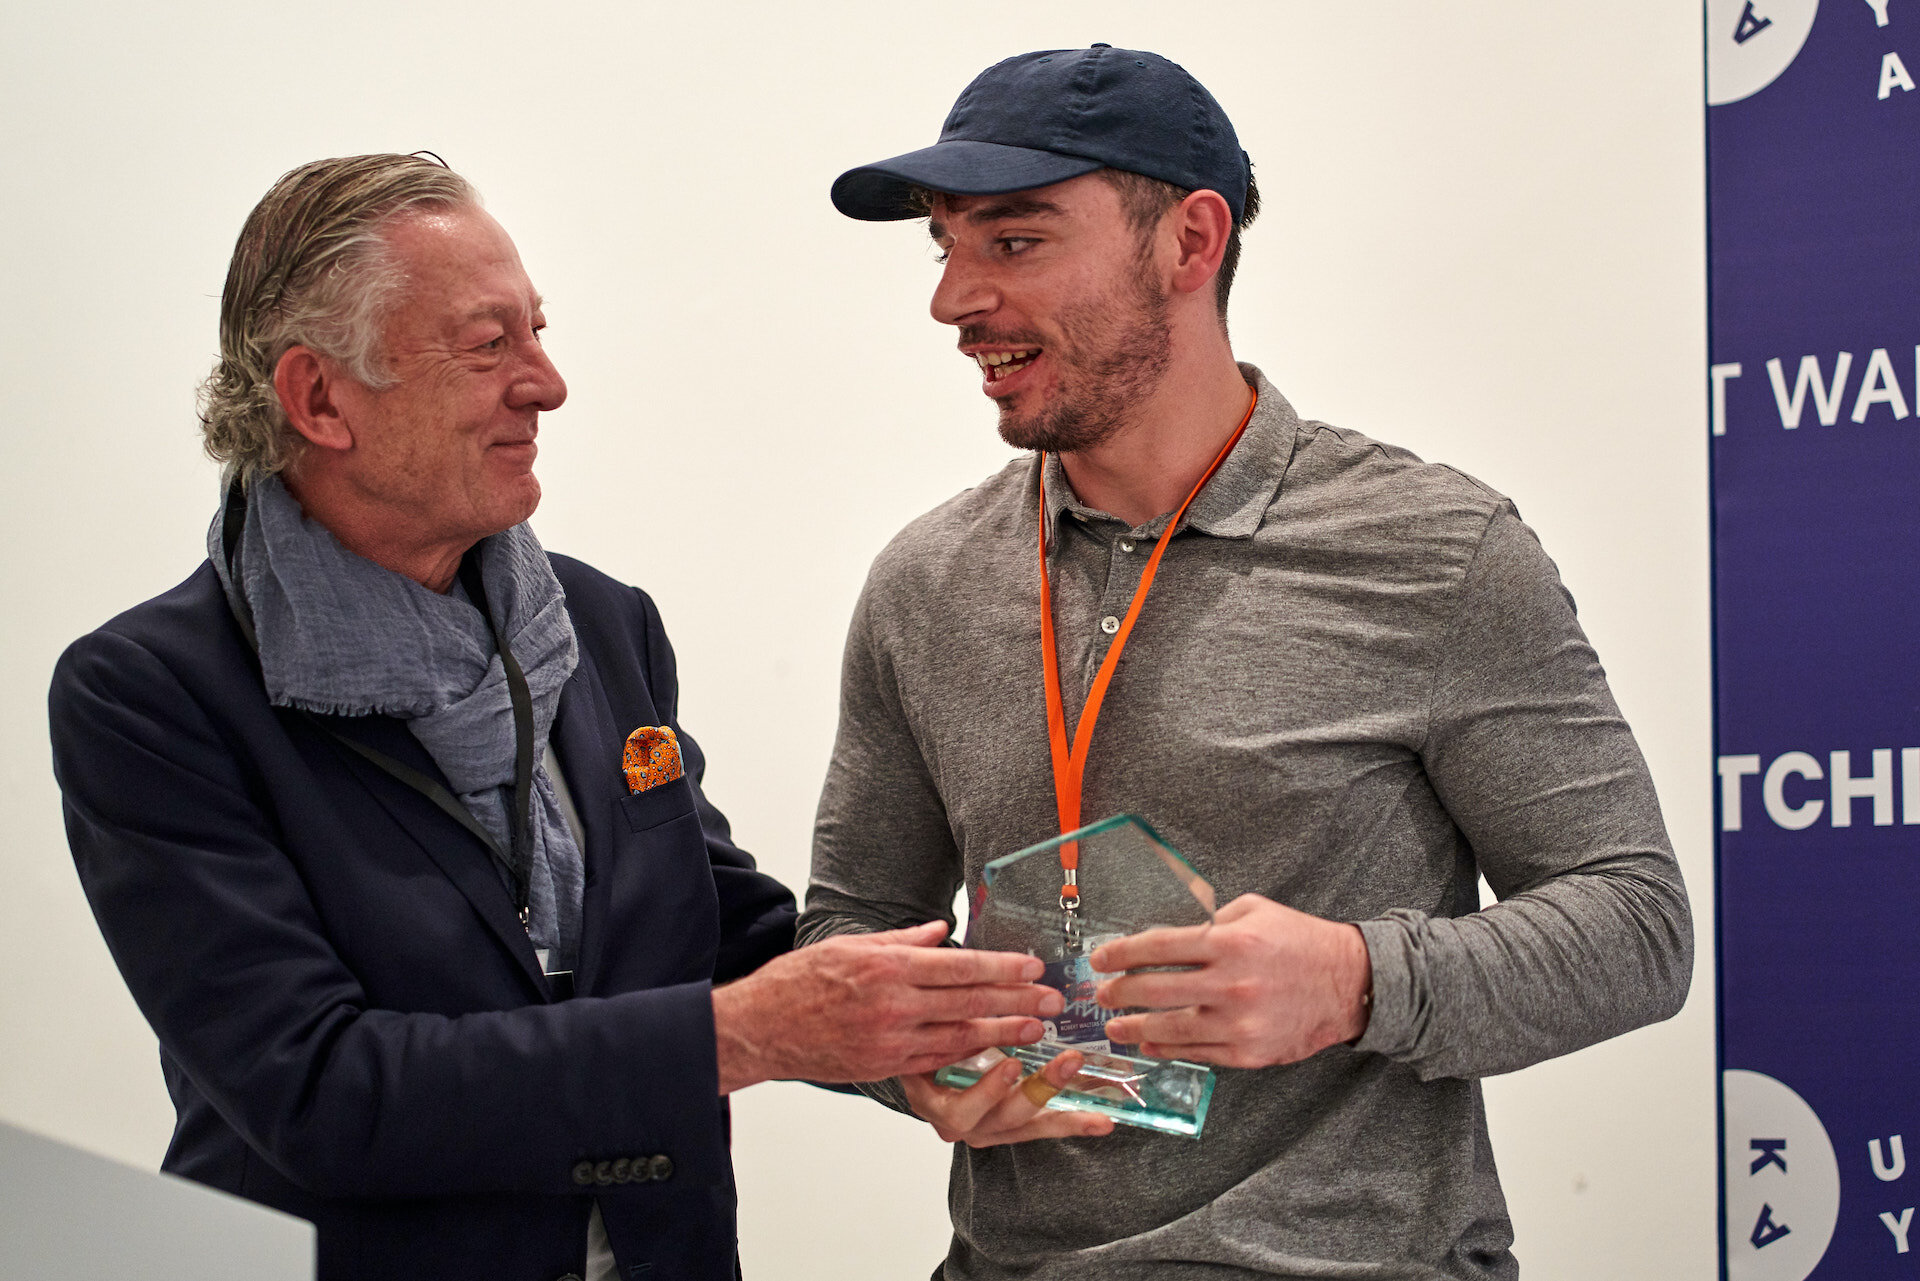 07.10.19 - UK Young Artist of the Year Award-174.jpg